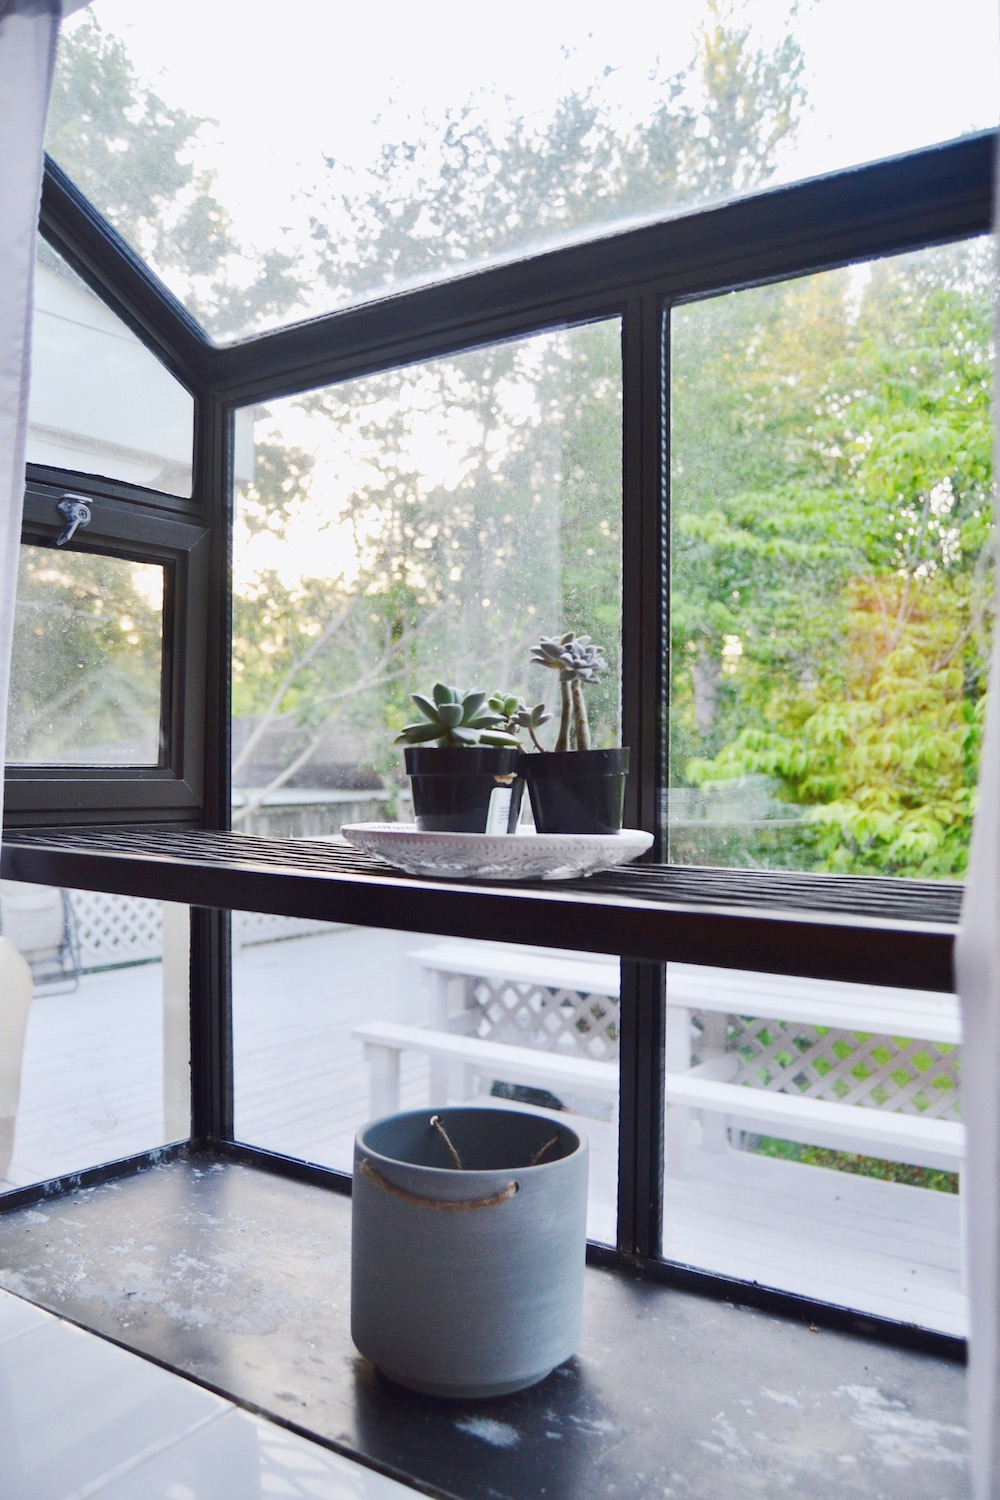 extended-bathroom-window